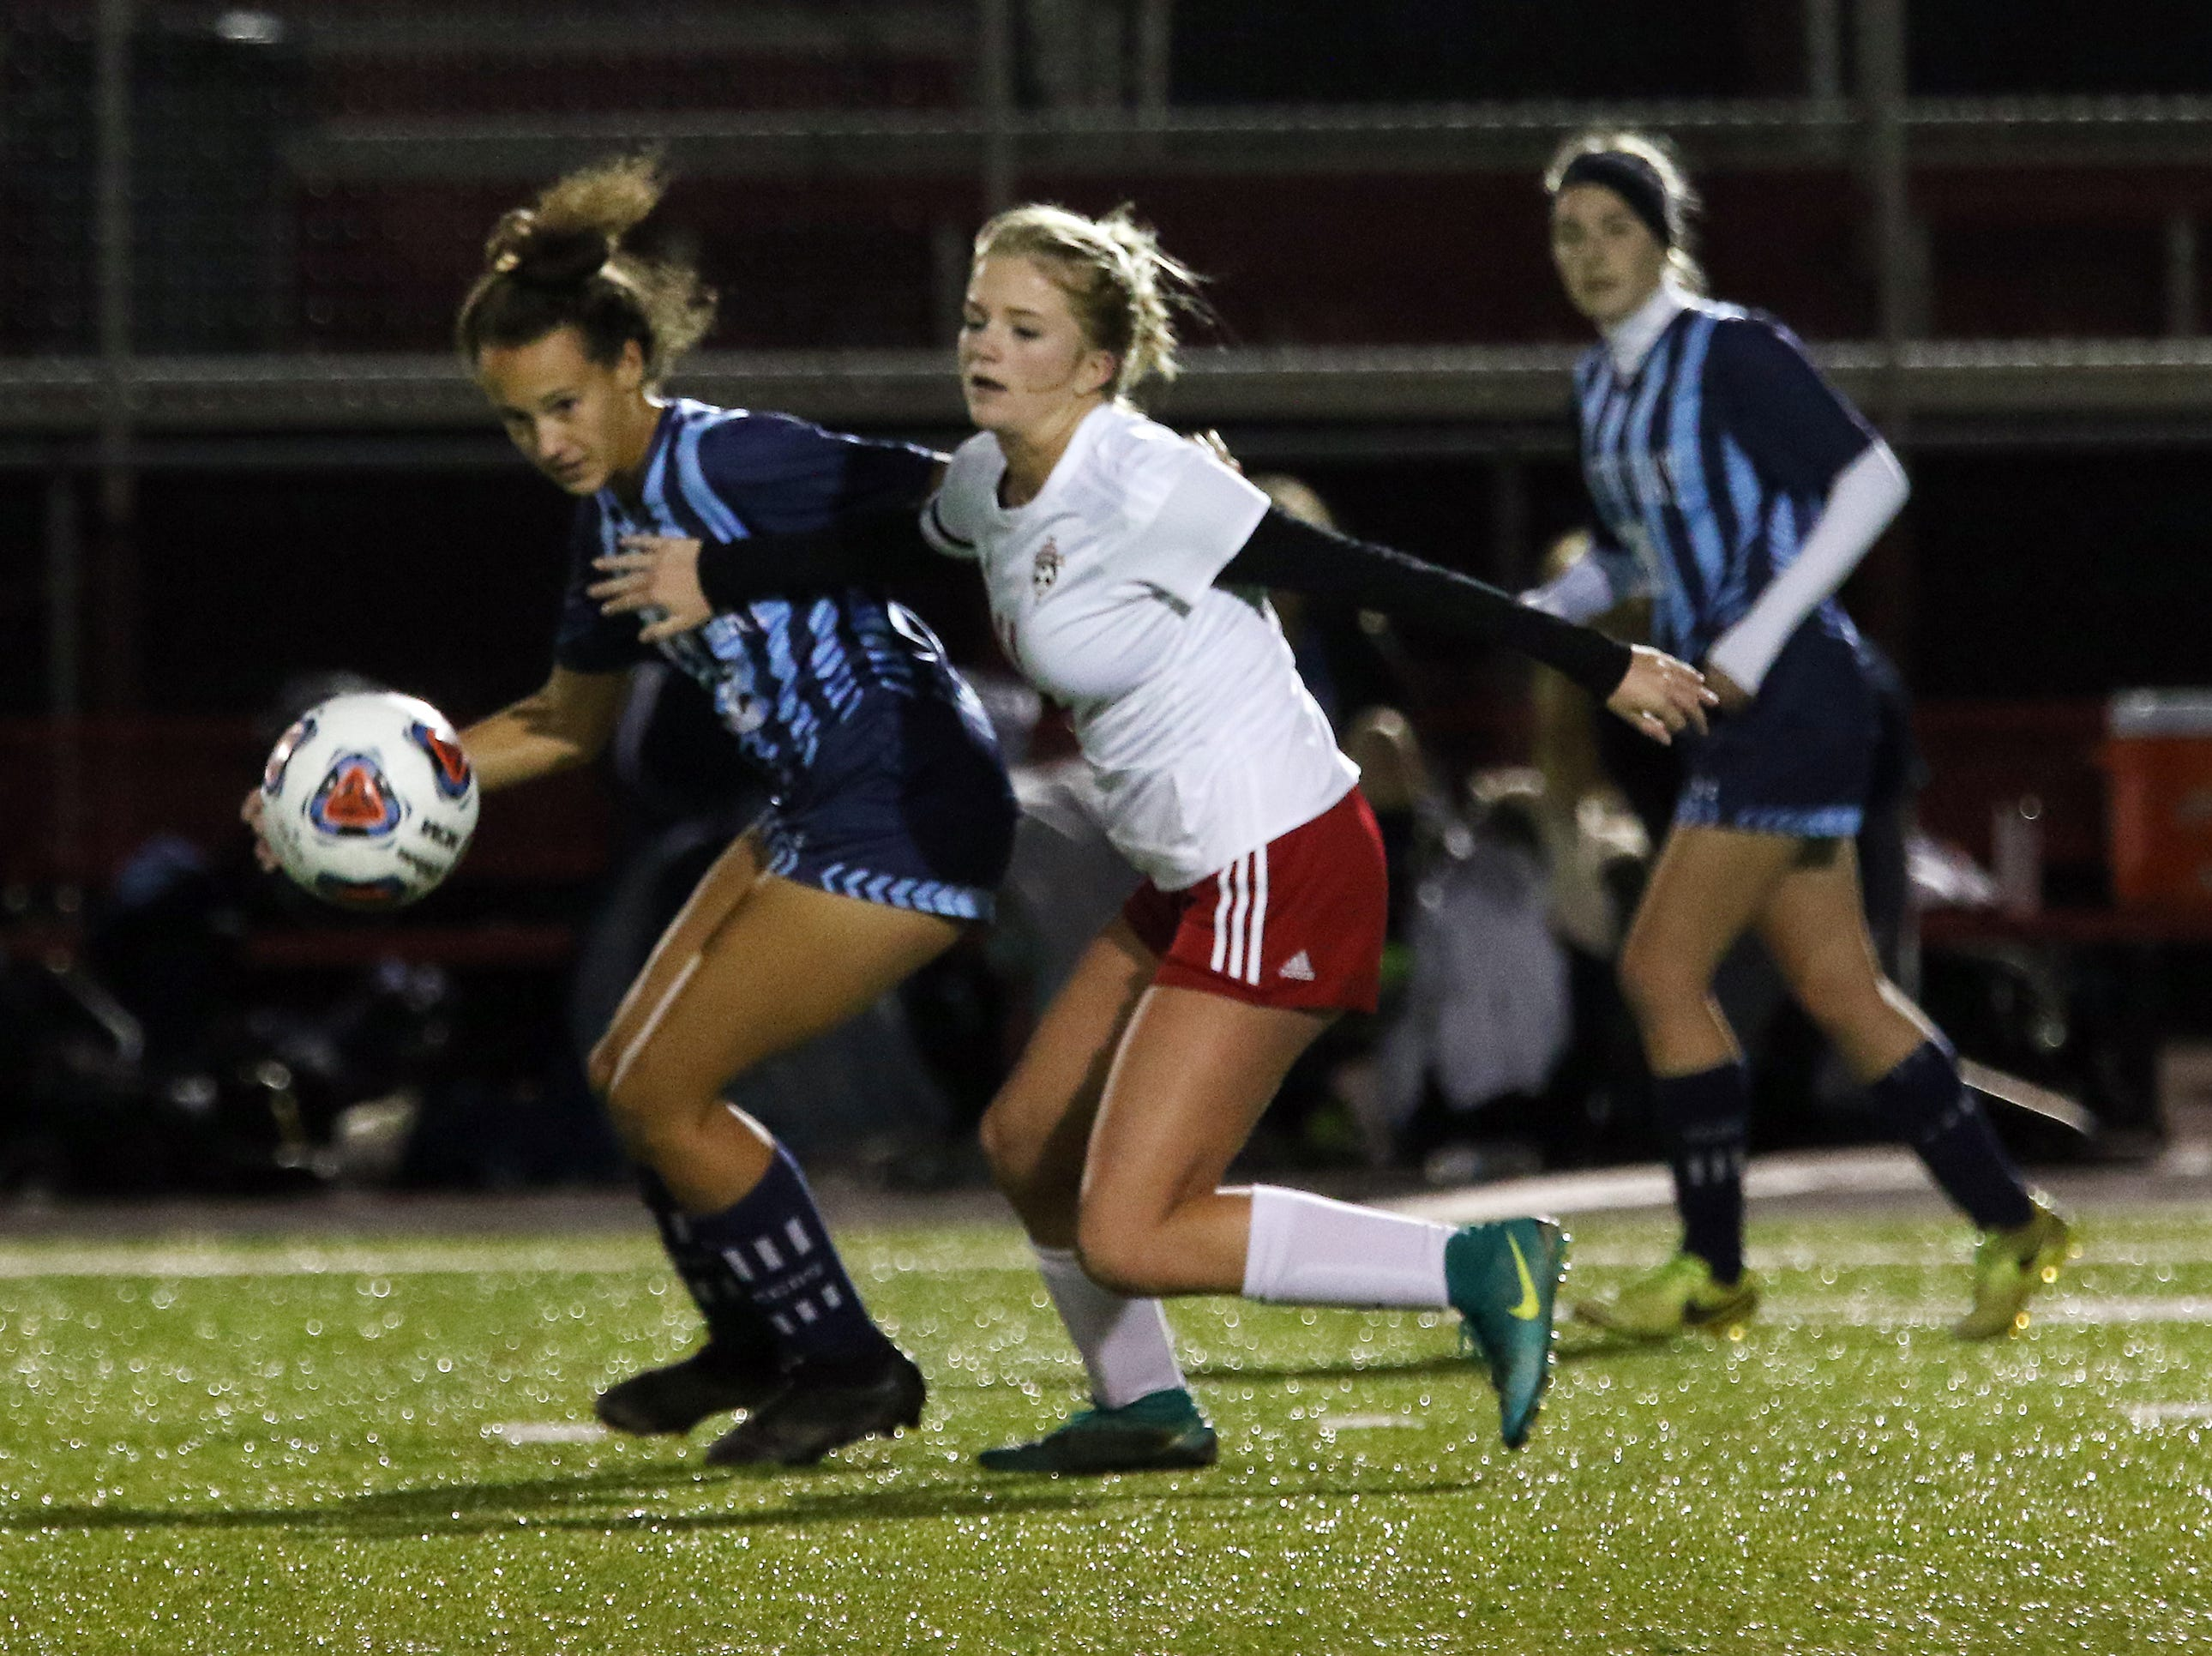 Rosecrans' Emma Zemba fights for the ball against CCD in the Division III state semifinals at London High School on Tuesday.